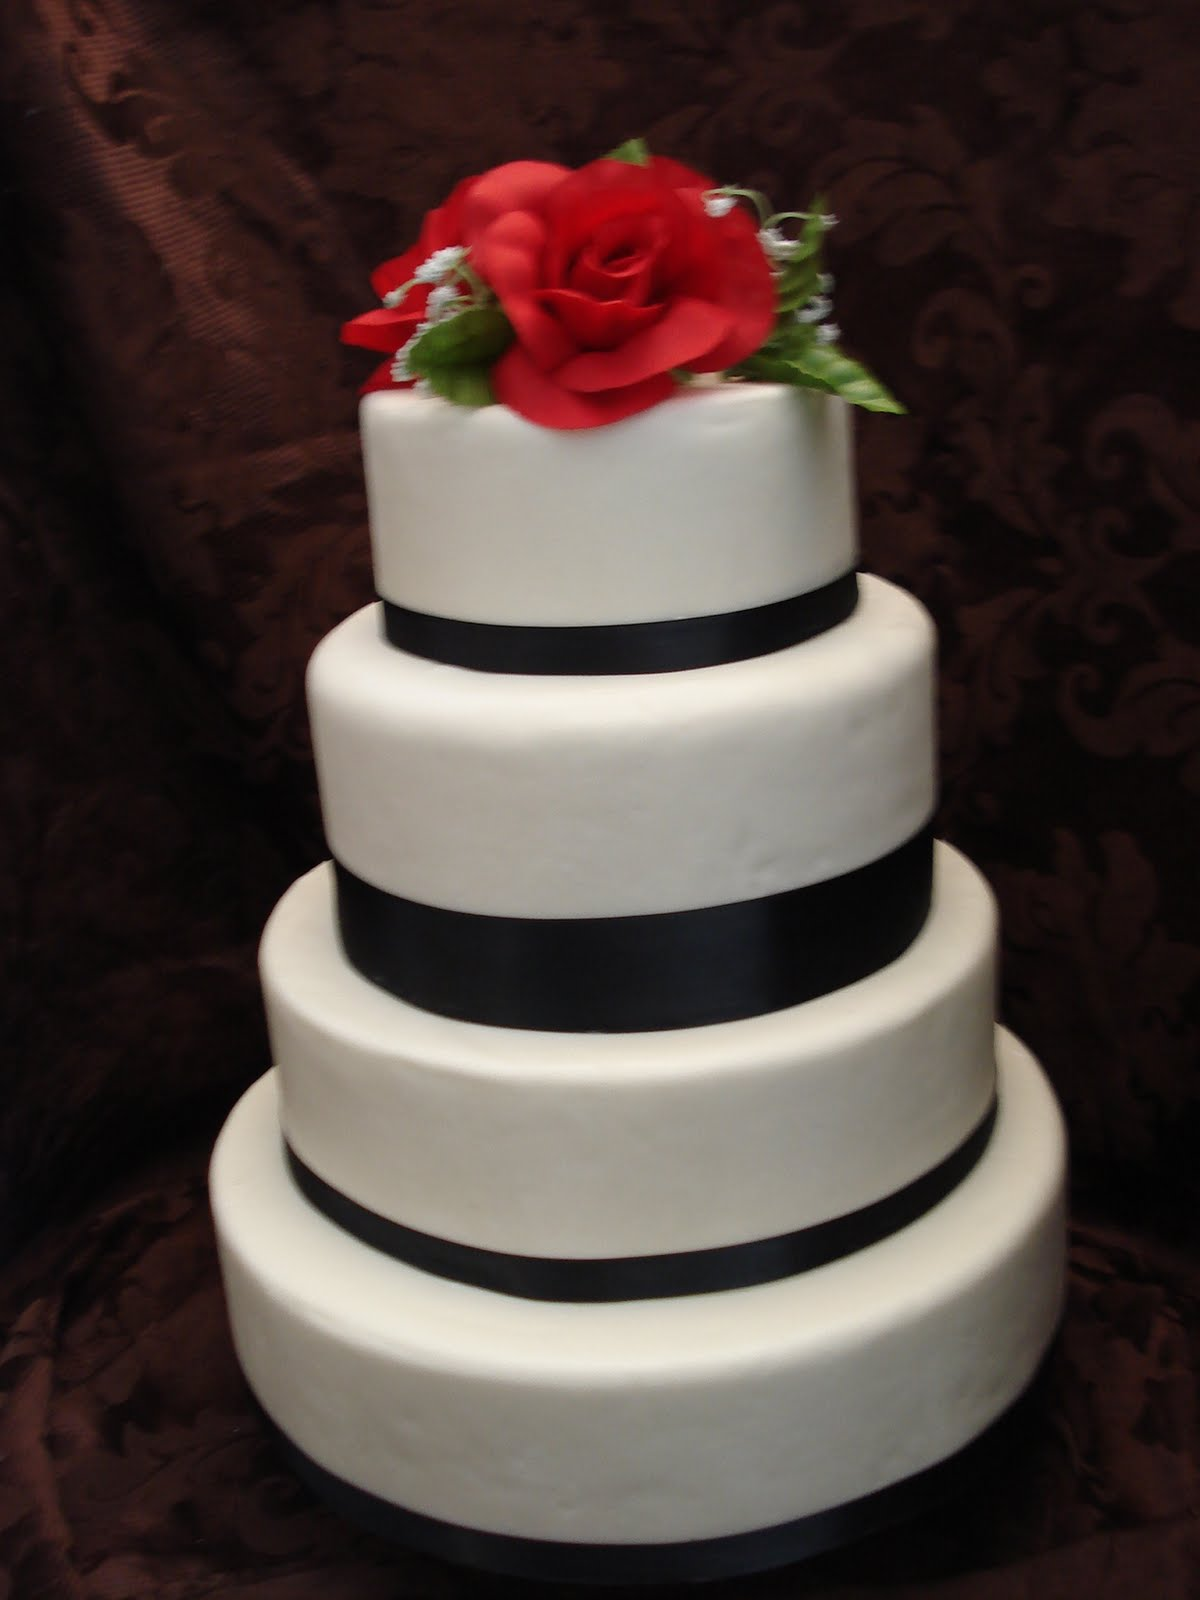 Black and red wedding cake.